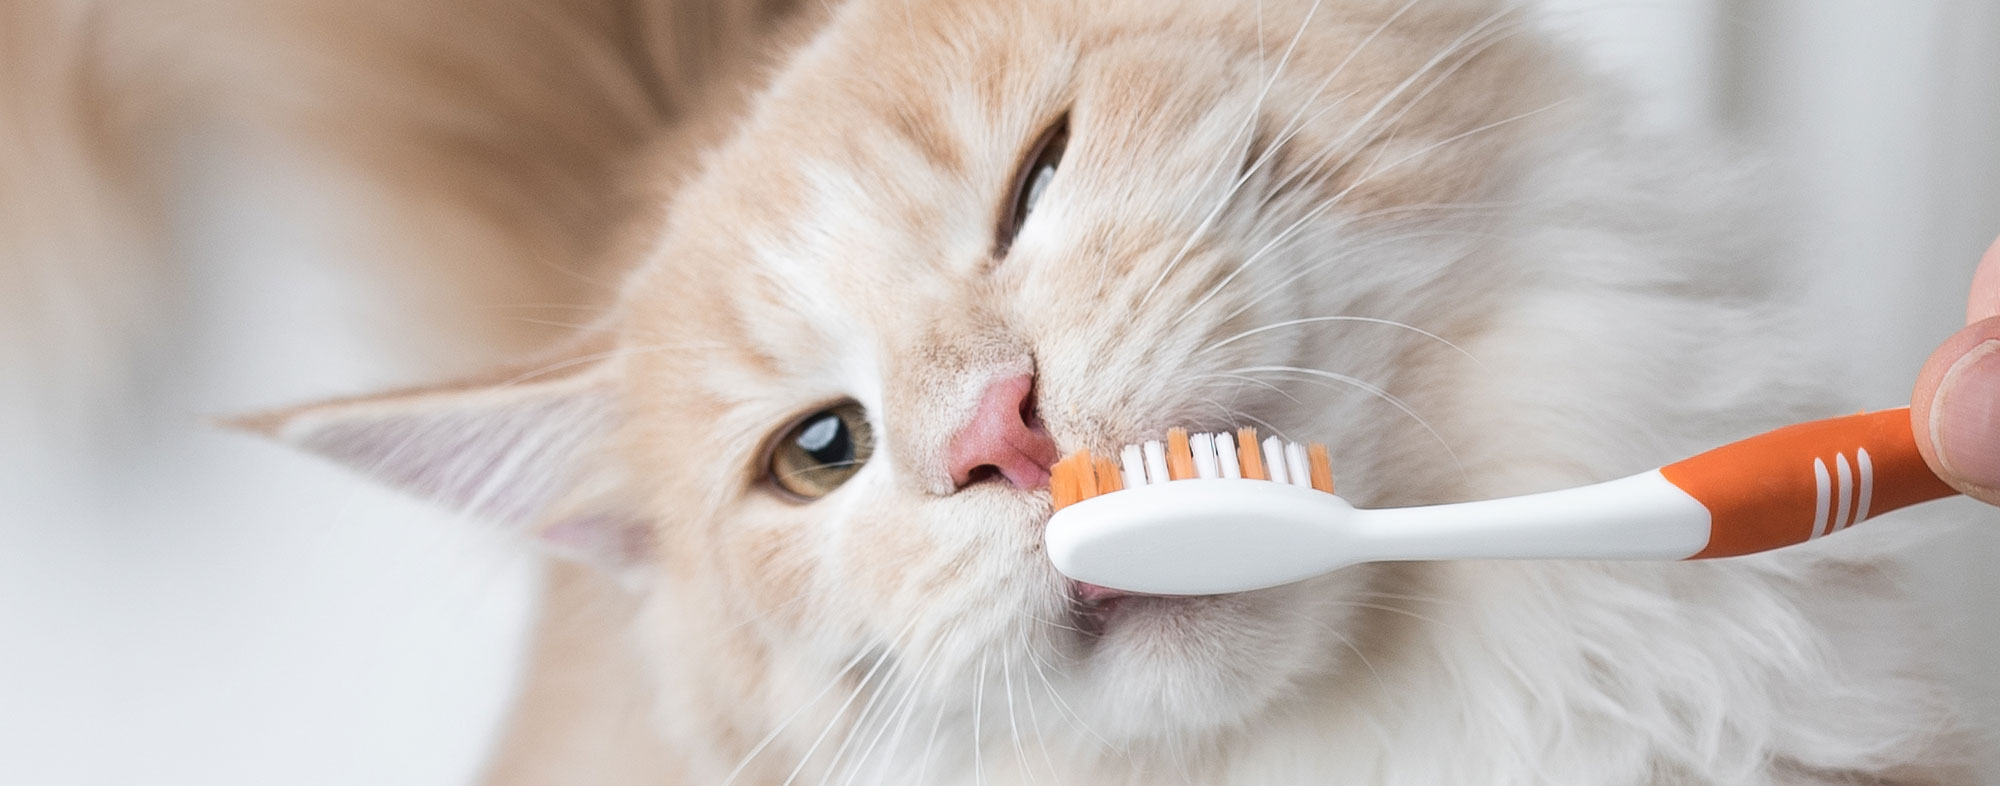 A special chicken paste makes cleaning your cat's teeth easy